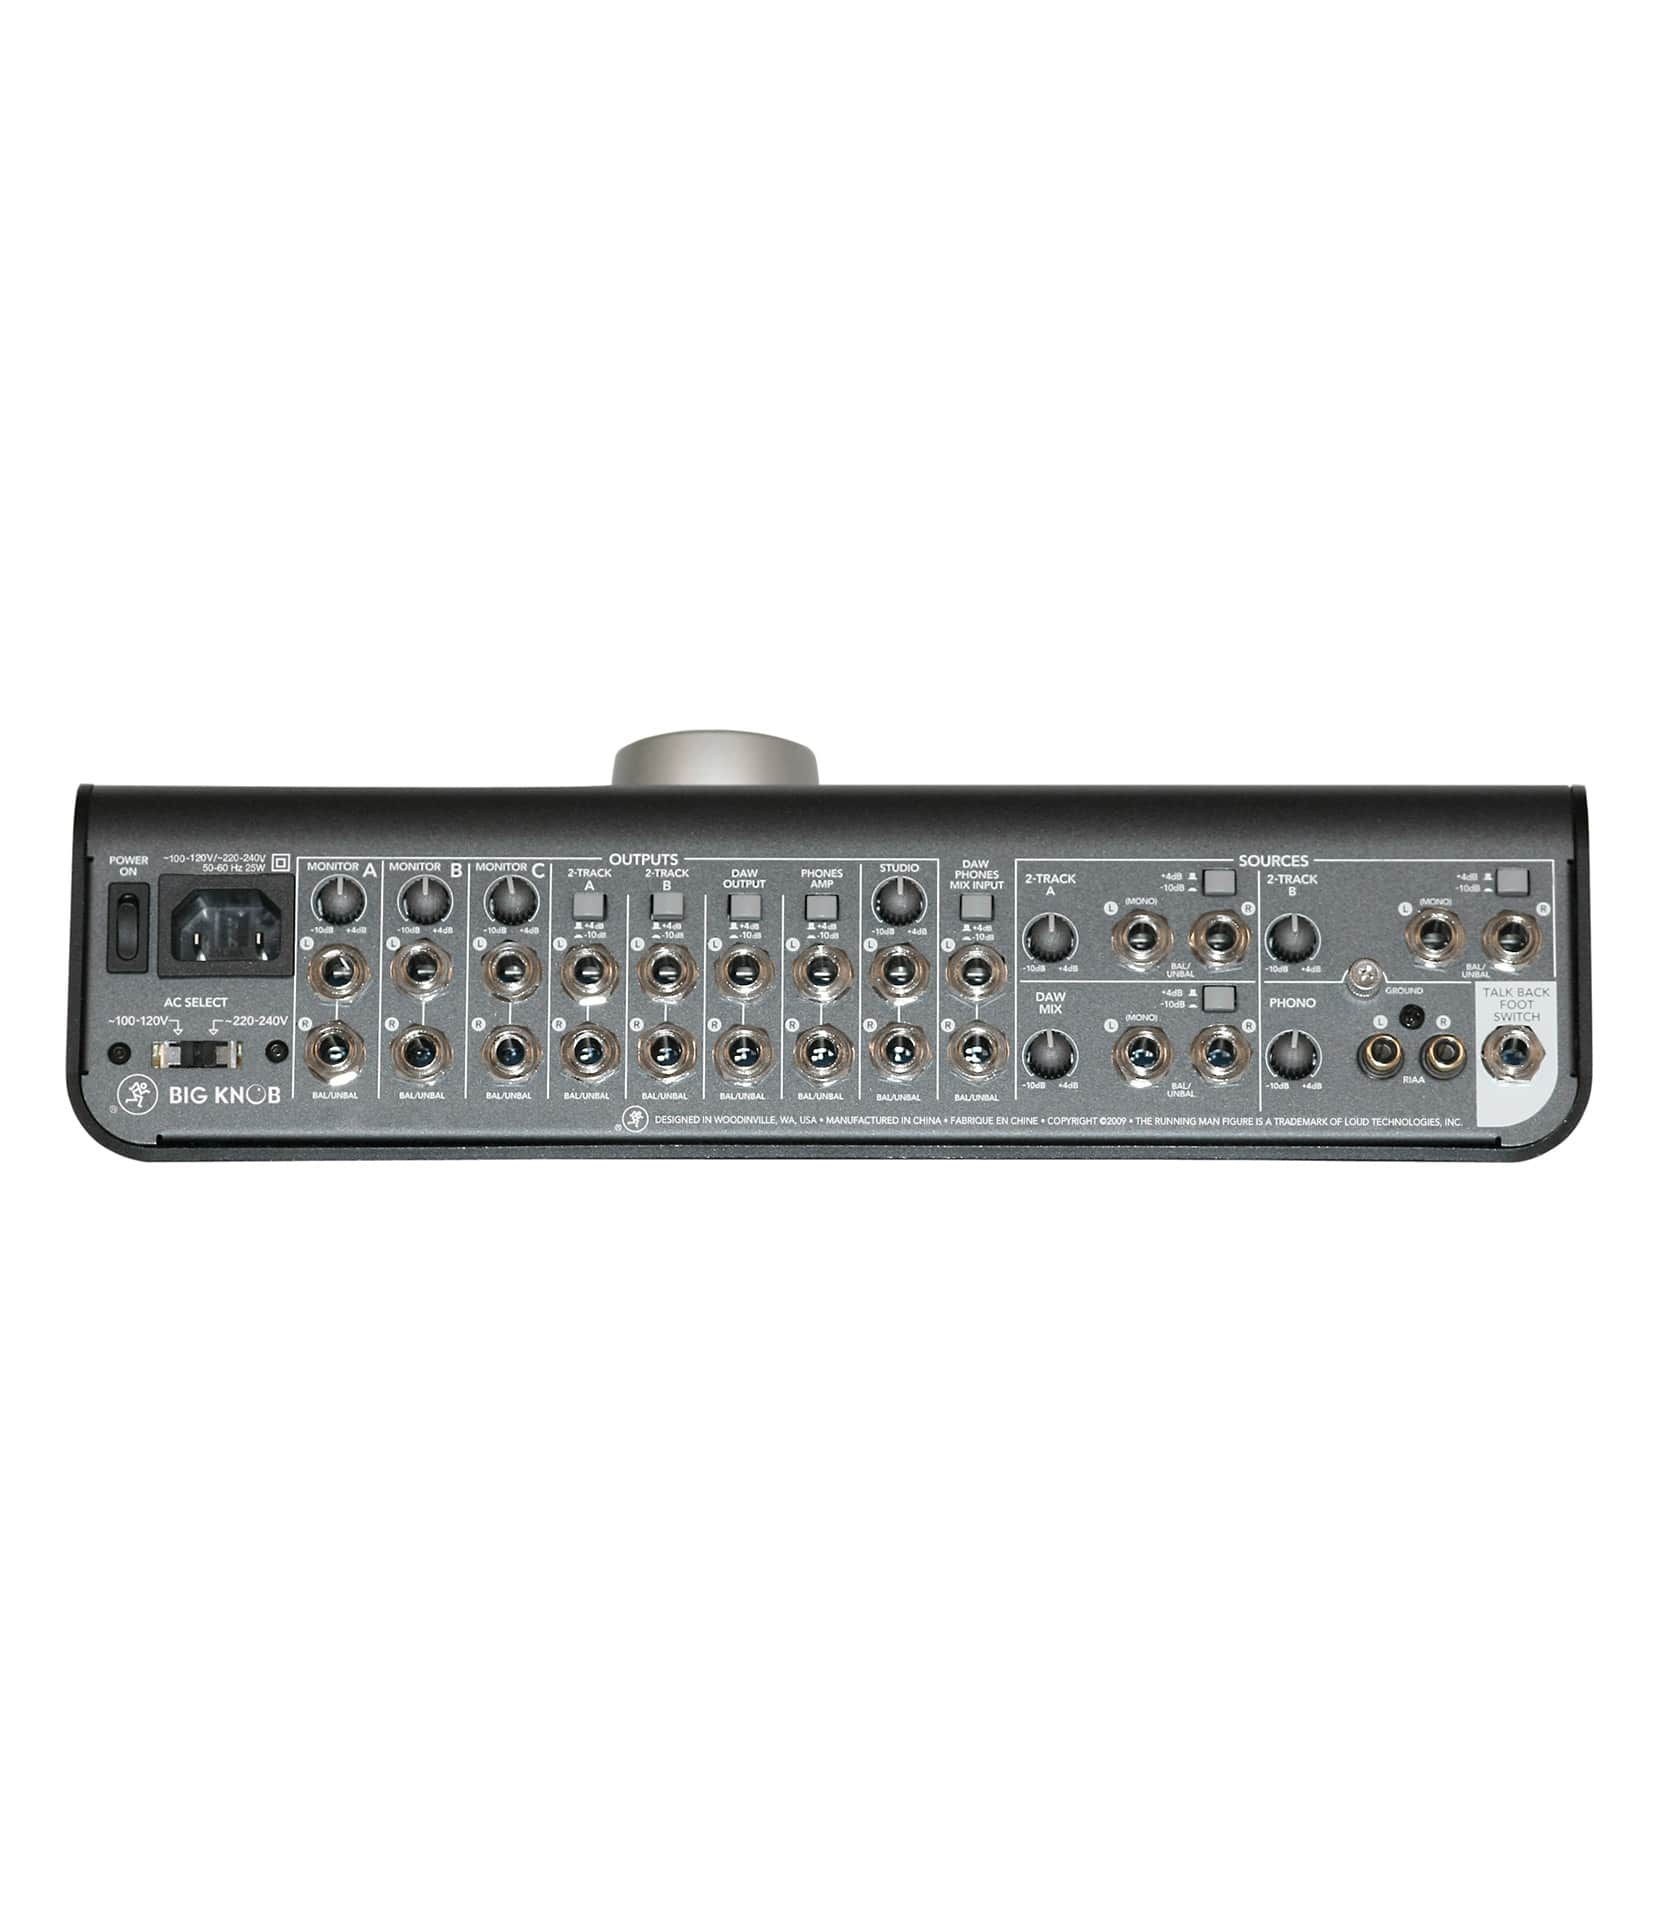 Big Knob Monitor Management - Buy Online